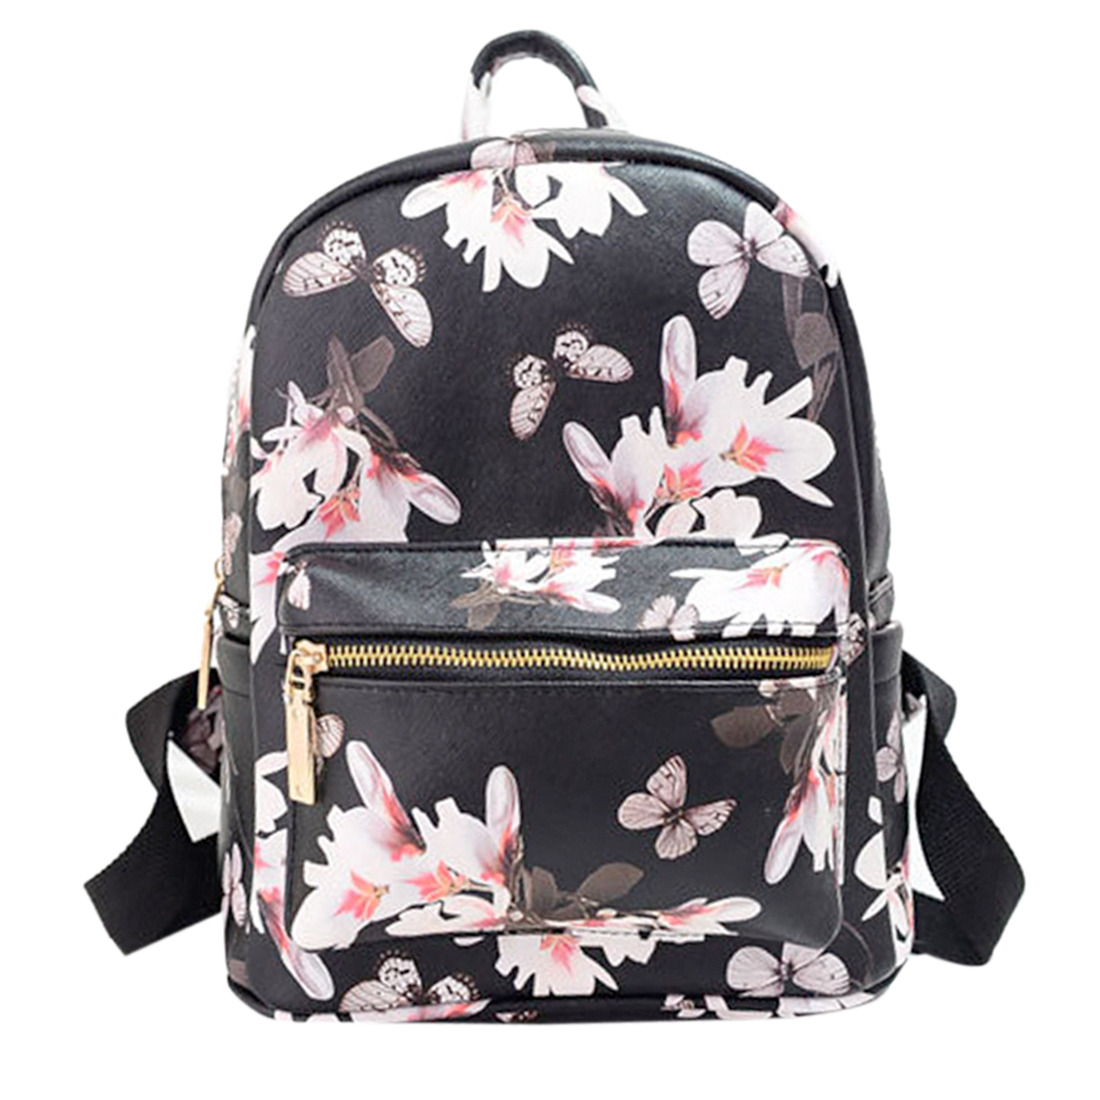 New Women Leather Butterfly Printed Satchel Backpack Shoulder Bag Back To School